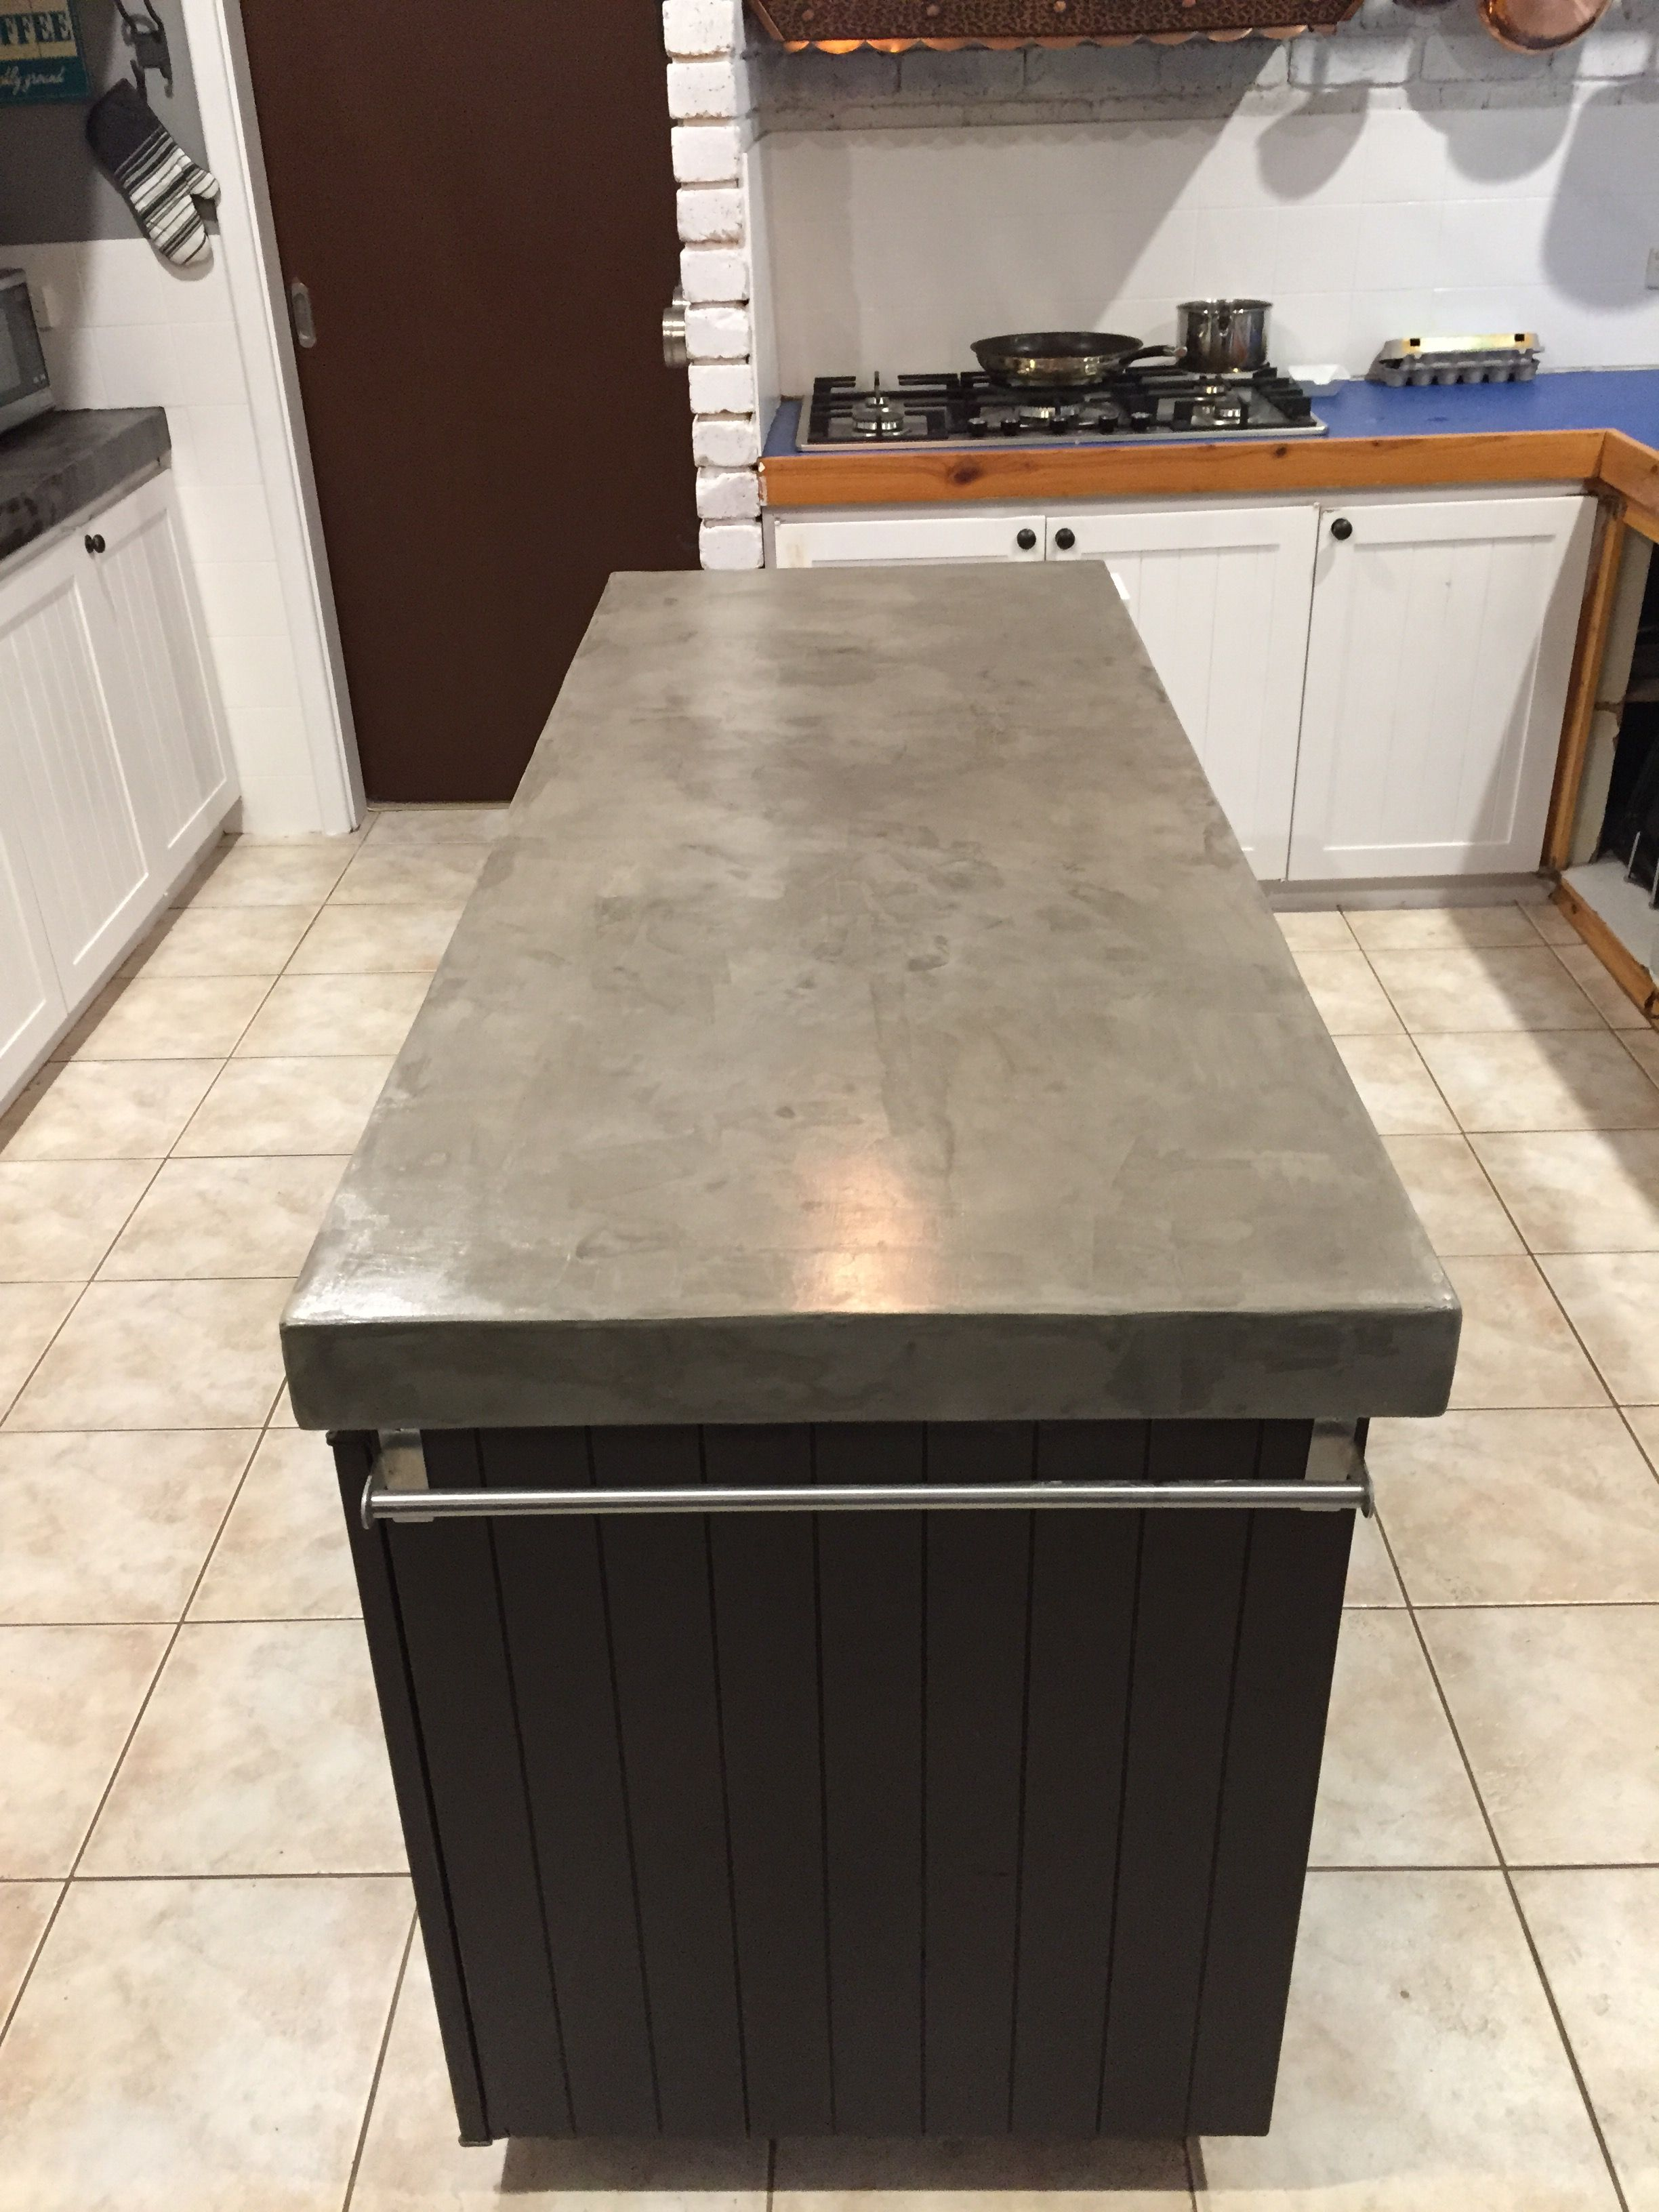 Finished Concrete Countertops Island Ardex Feather Finish 4 Coats Done Kitchen